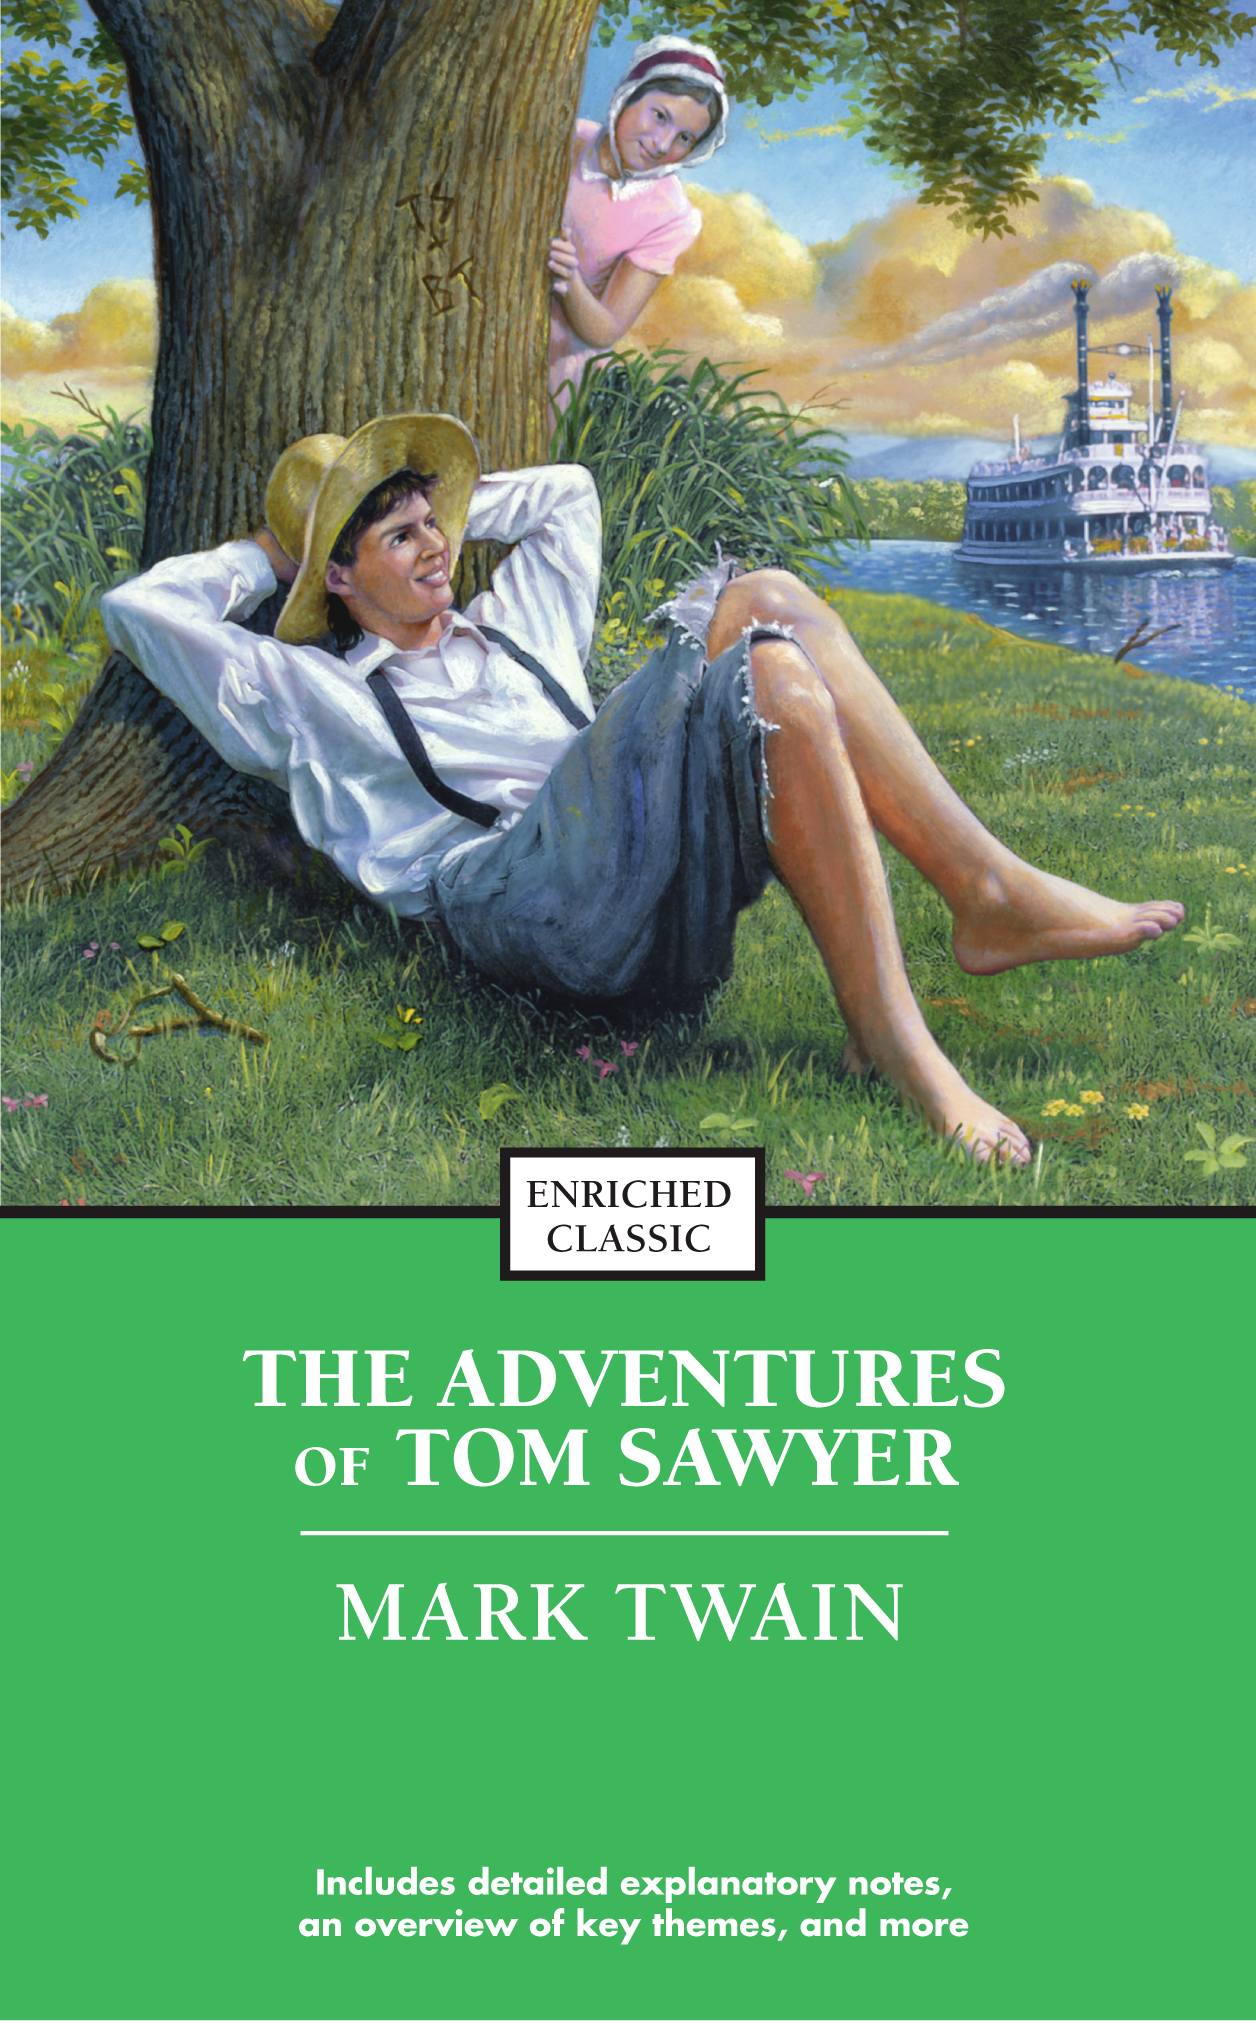 Tom sawyer writer